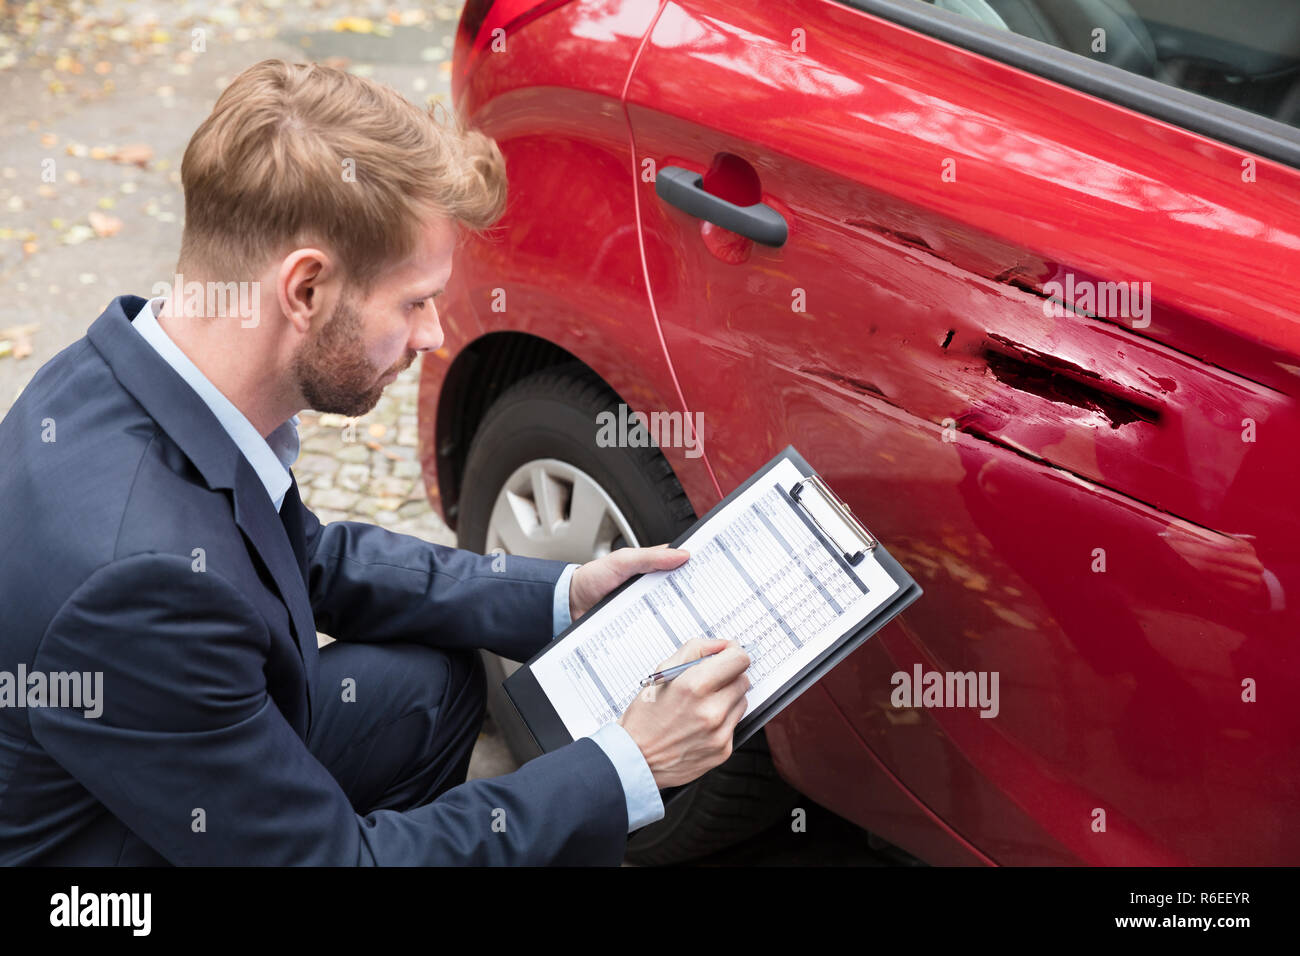 Insurance Agent Examining Car After Accident - Stock Image